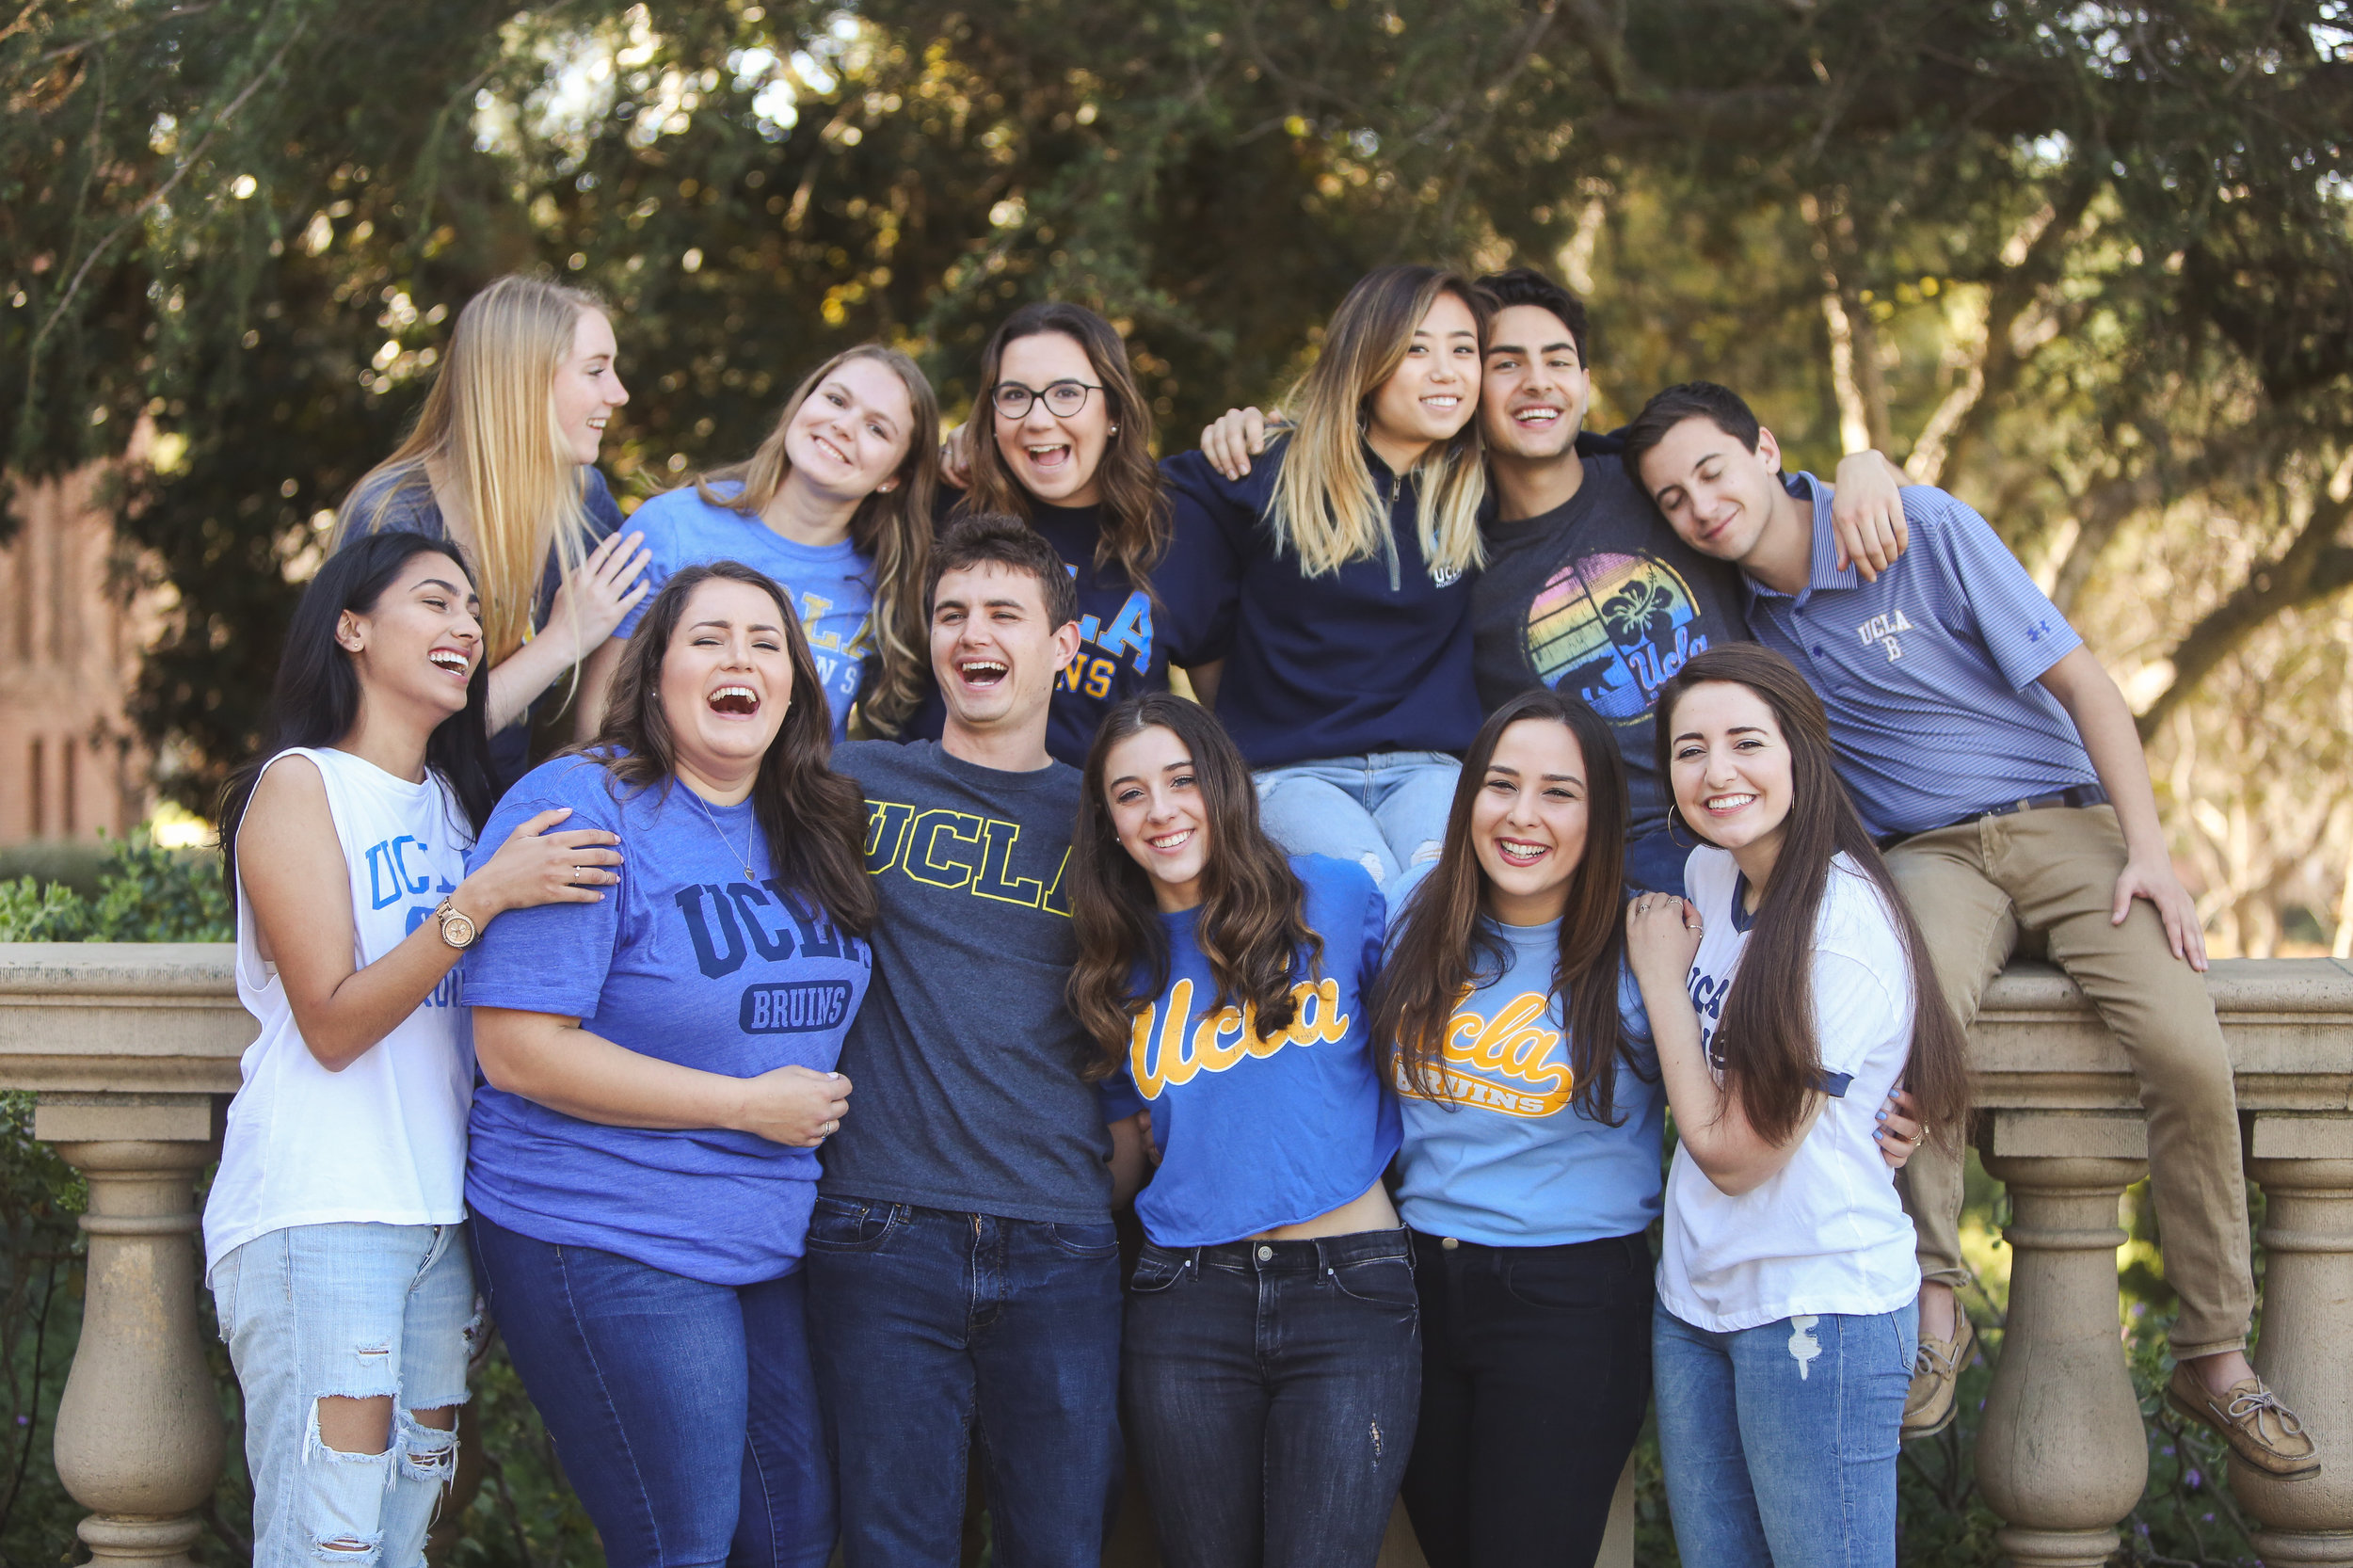 UCLA_Homecoming-207.jpg